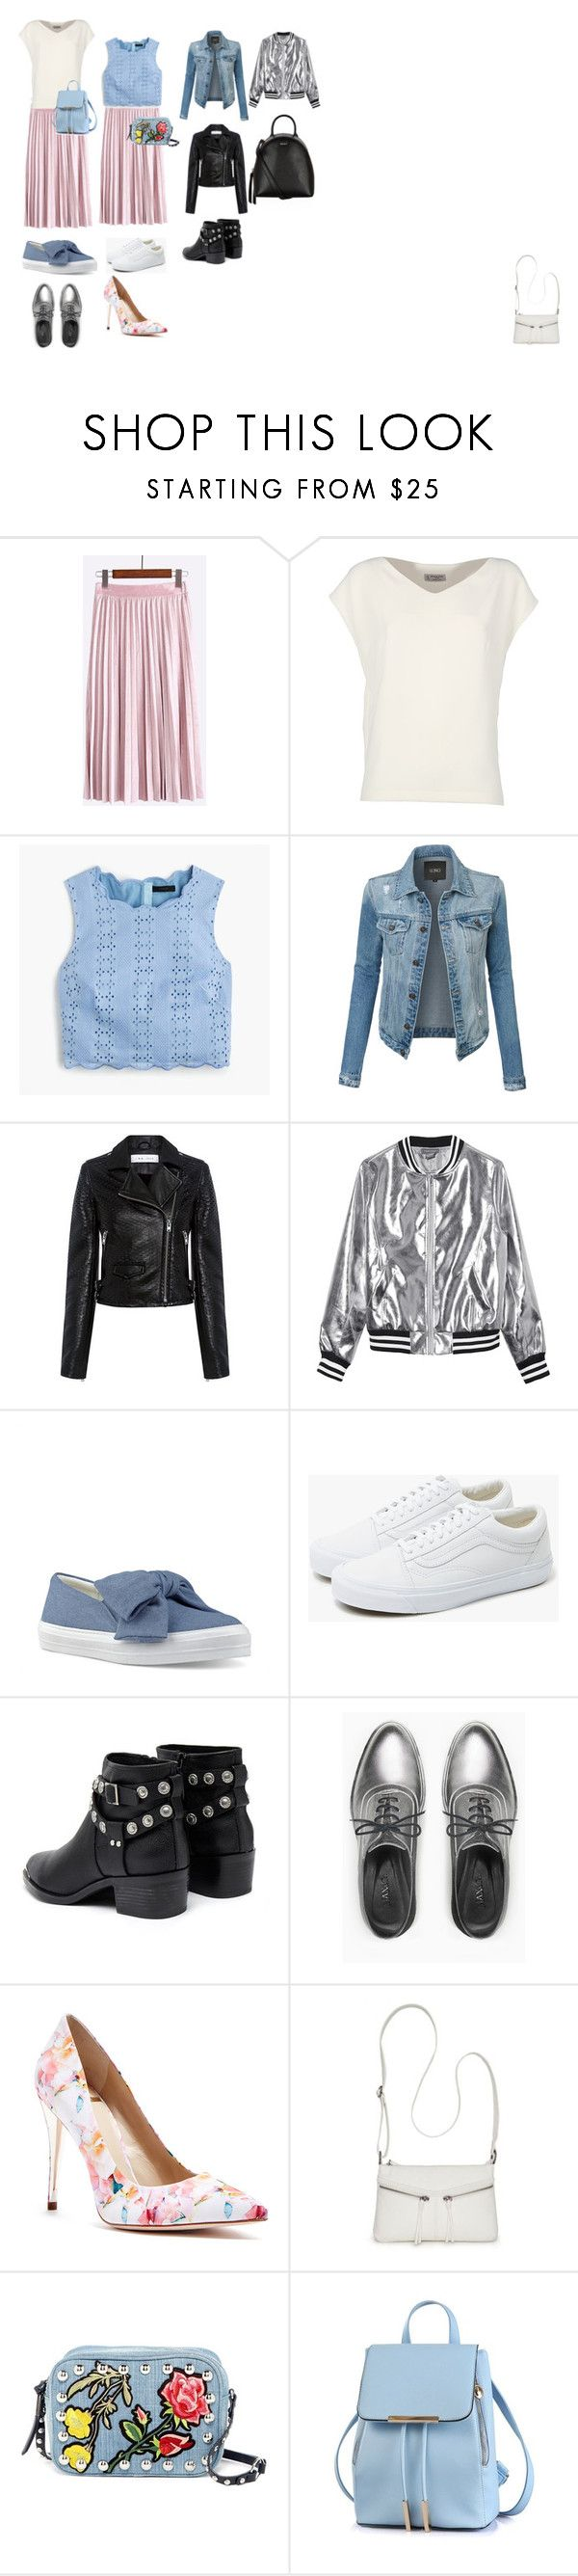 Без названия #2 by fashionsetter-598 on Polyvore featuring мода, Alberto Biani, J.Crew, IRO, LE3NO, Sans Souci, Max&Co., GUESS by Marciano, Vans and Nine West